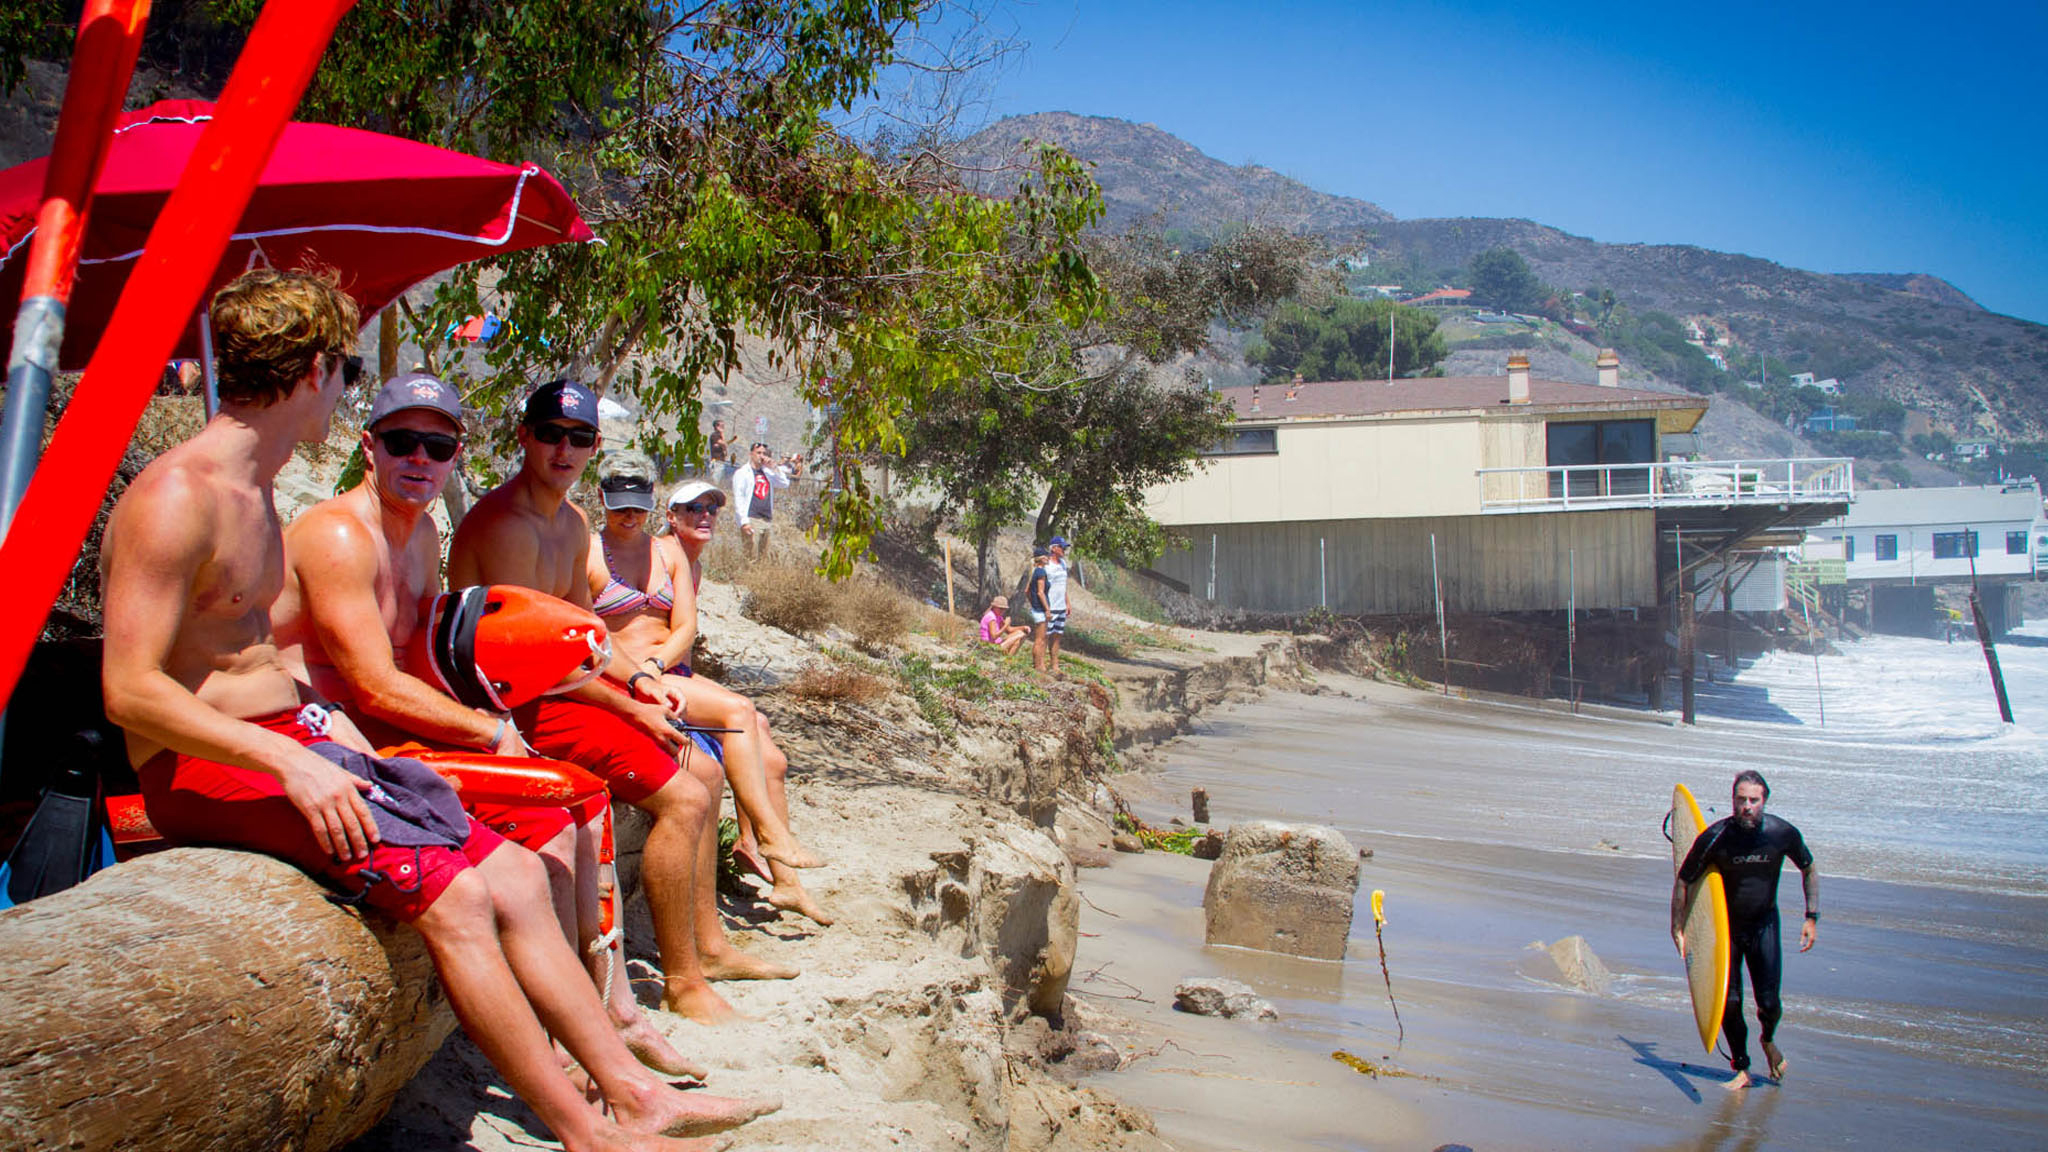 L.A. County Lifeguards